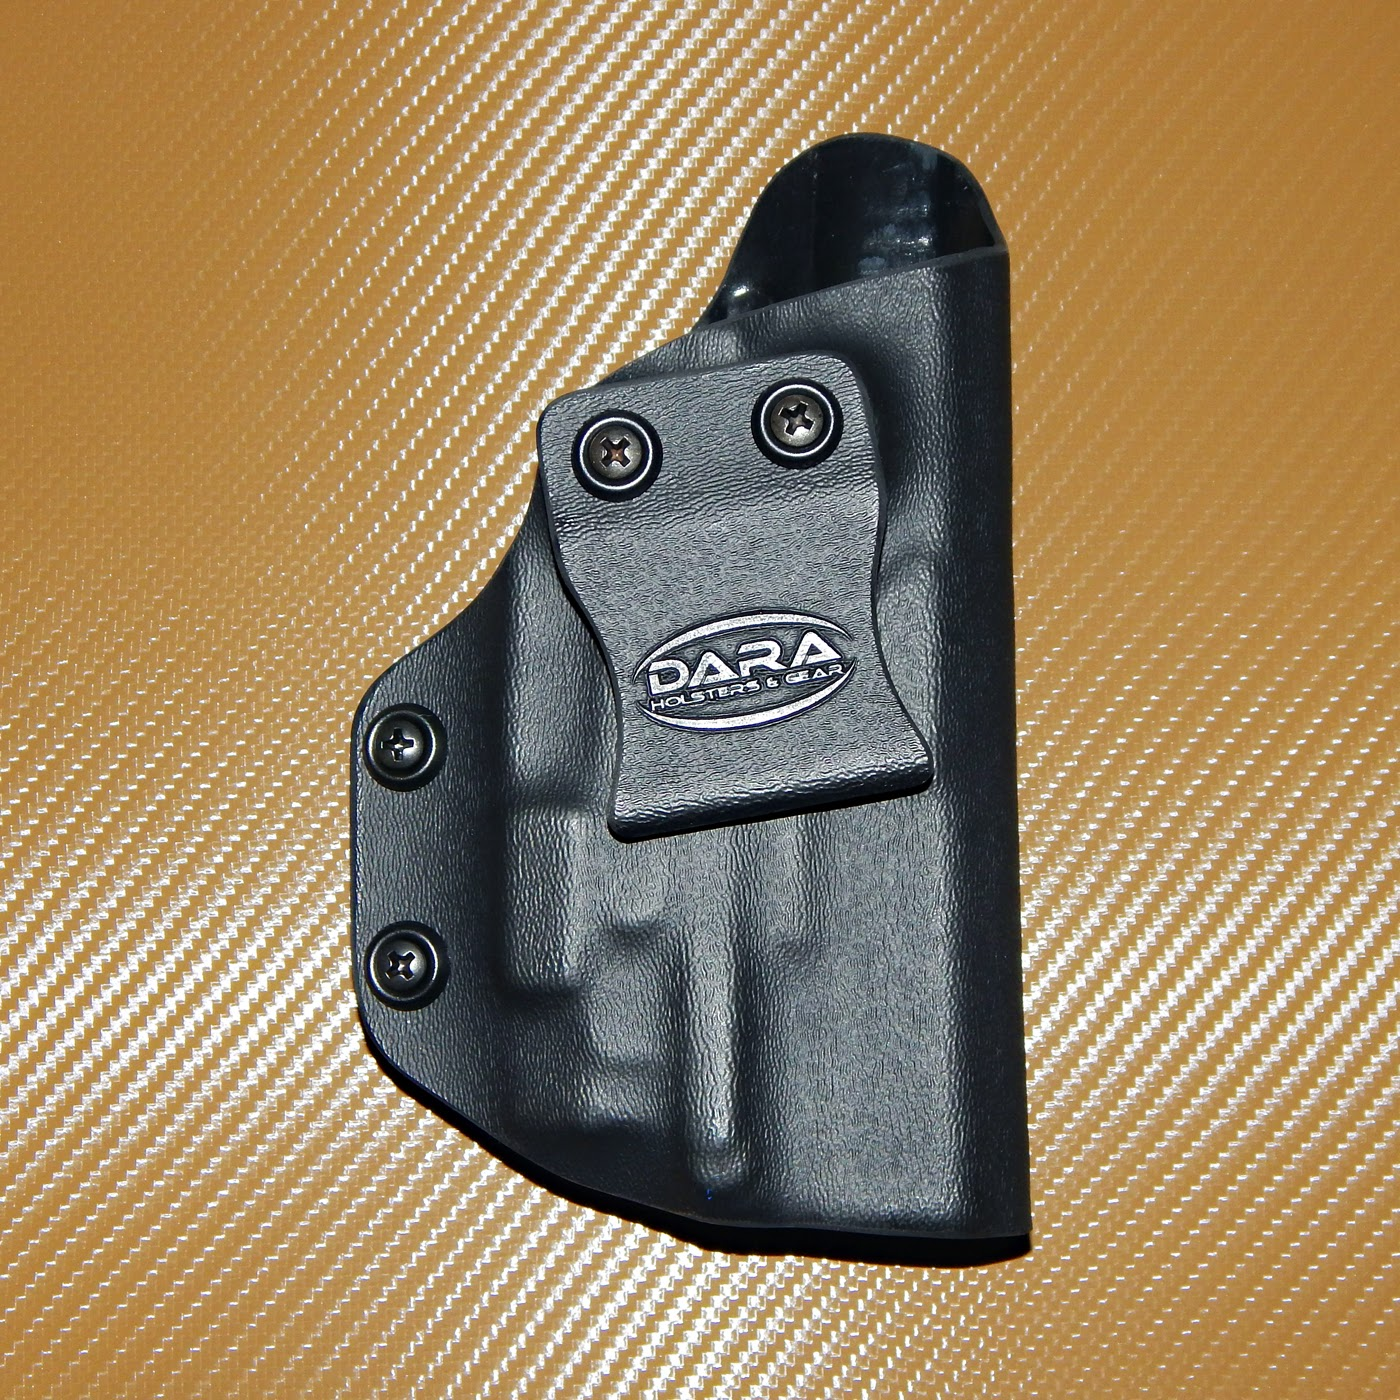 holster for gun with surefire light, holster for x300, holster for x300u, holster for x300 ultra, holster for x300v light, holster for x400 ultra